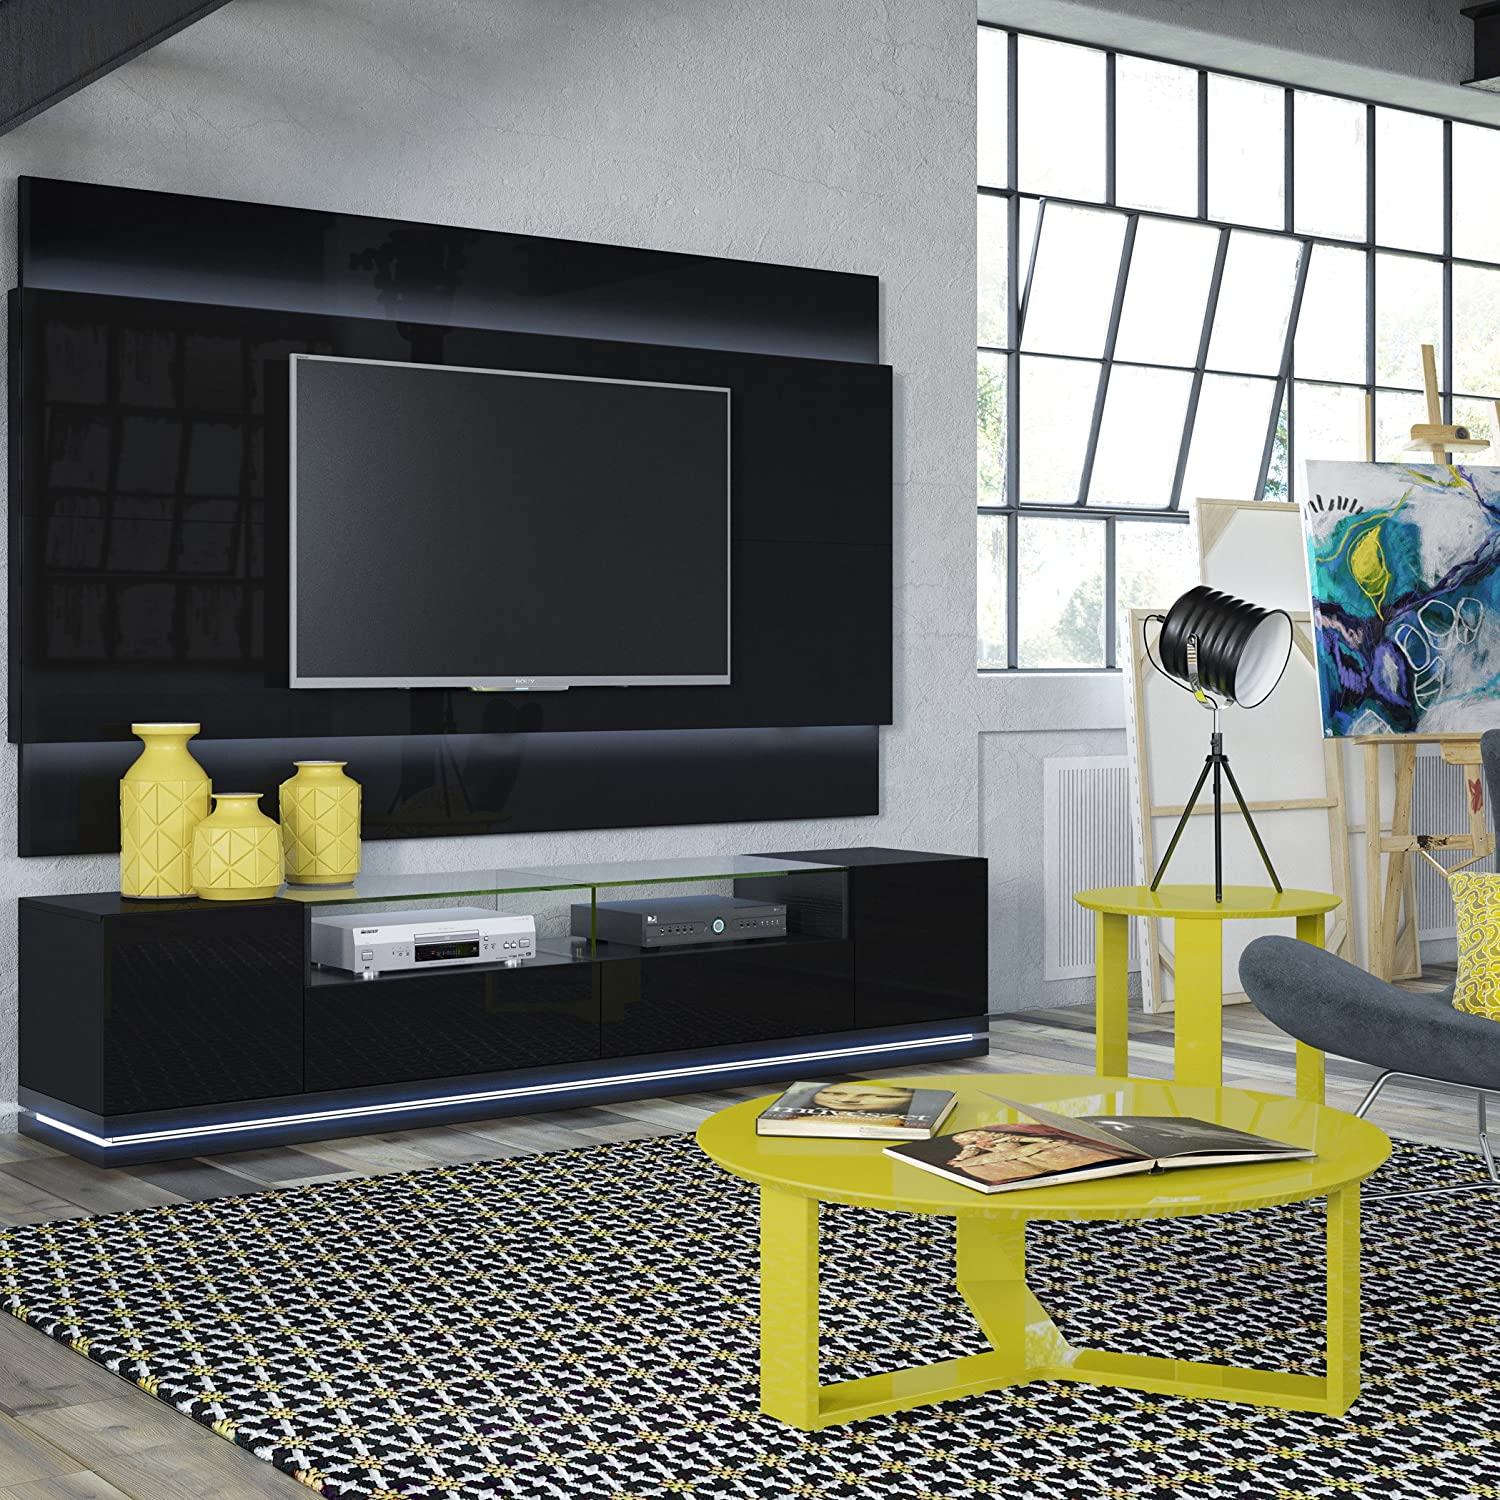 Manhattan Comfort Vanderbilt Collection Contemporary TV Stand with Storage and LED Lights, 85.4